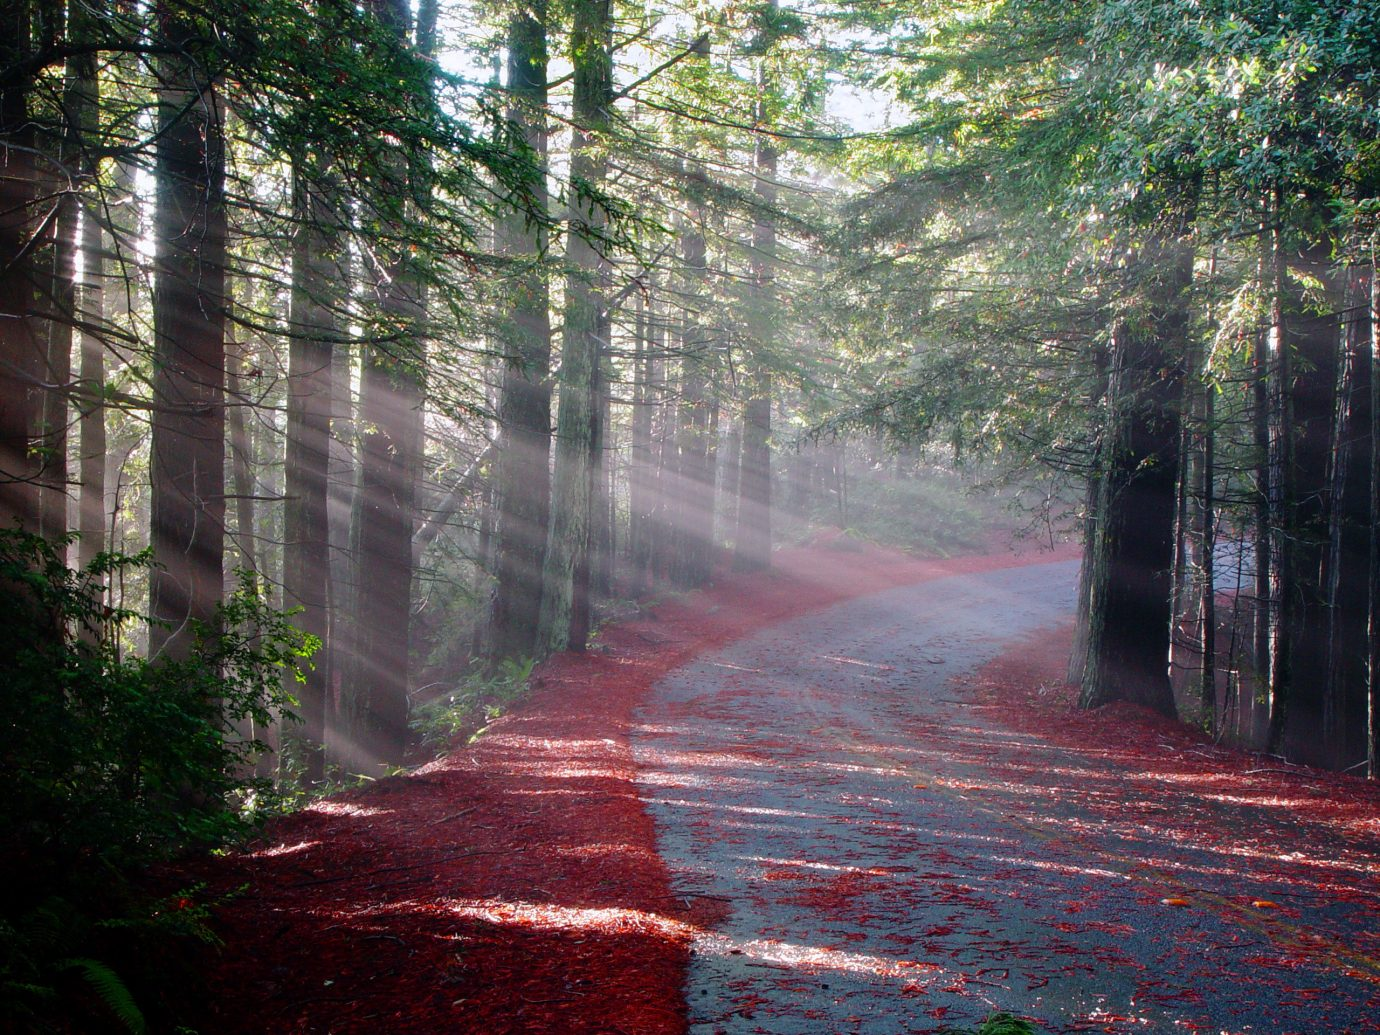 Trip Ideas tree habitat Nature Forest atmospheric phenomenon natural environment outdoor woodland season sunlight morning leaf autumn woody plant wooded trail plant sprinkler system wood dirt